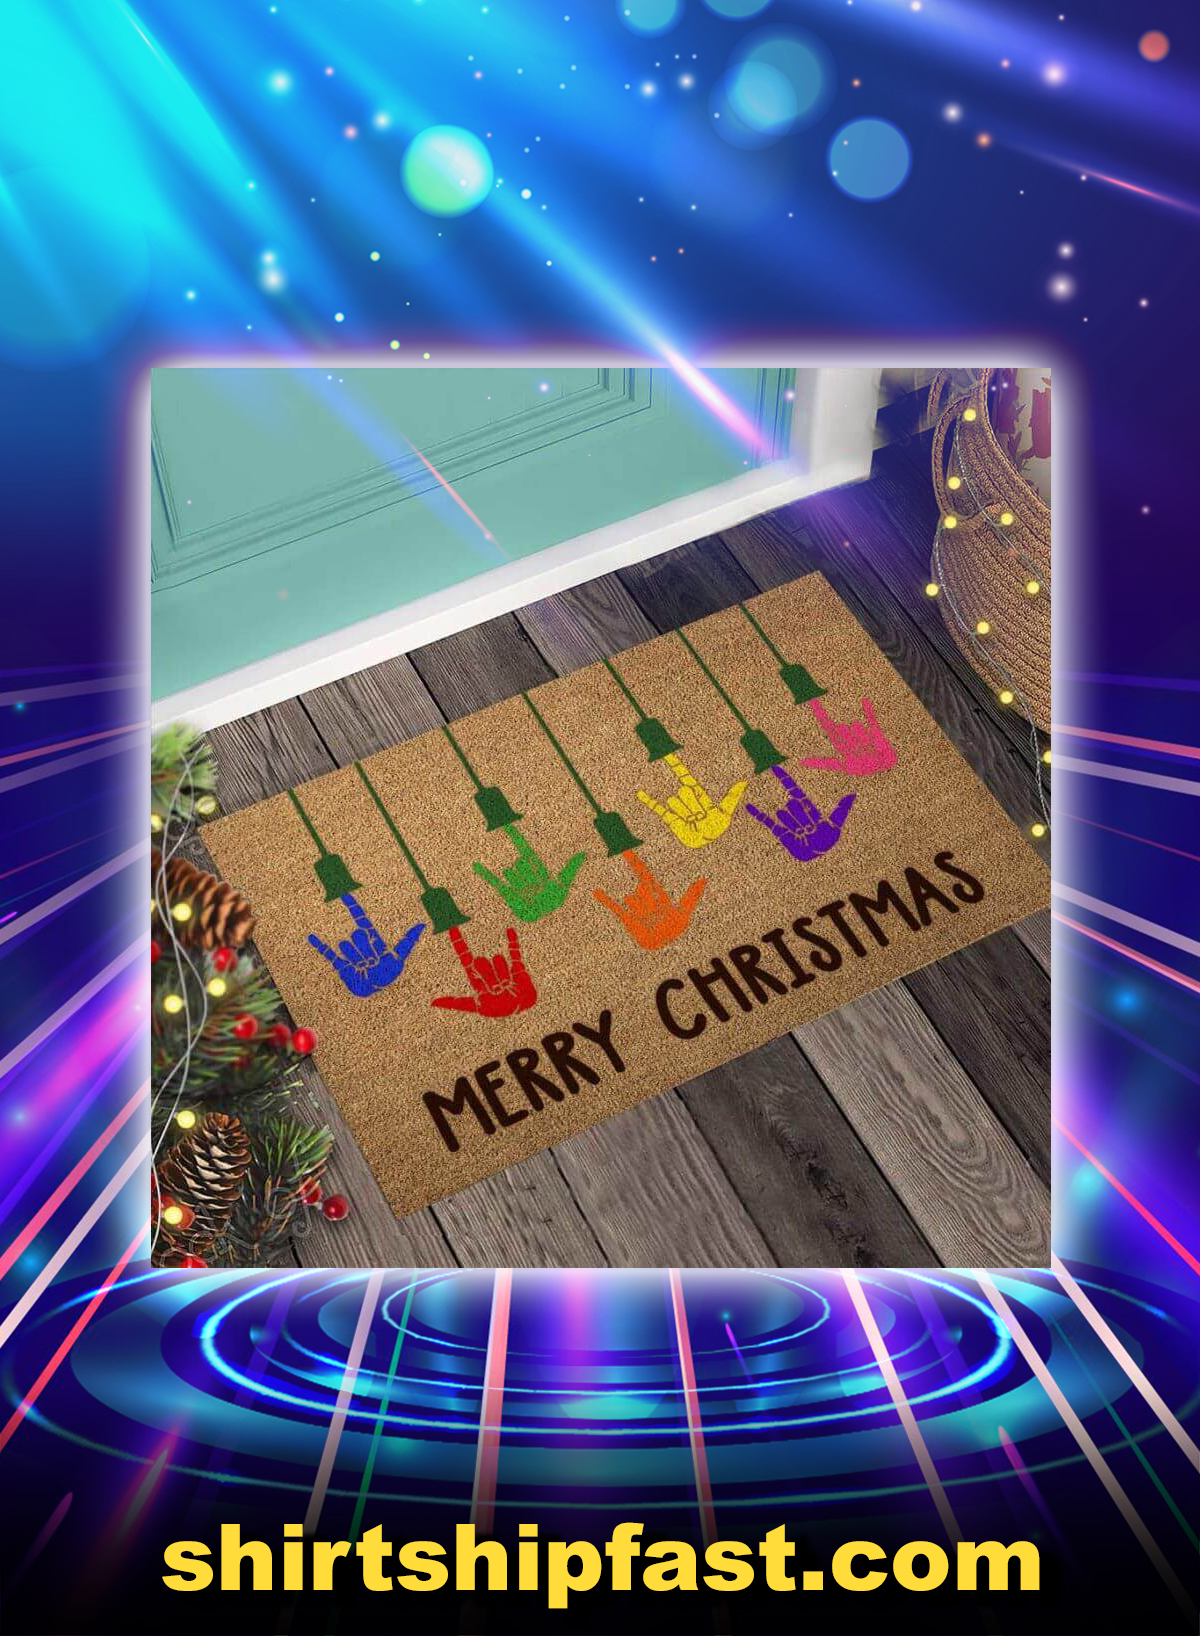 Merry christmas american sign language doormat - Picture 1